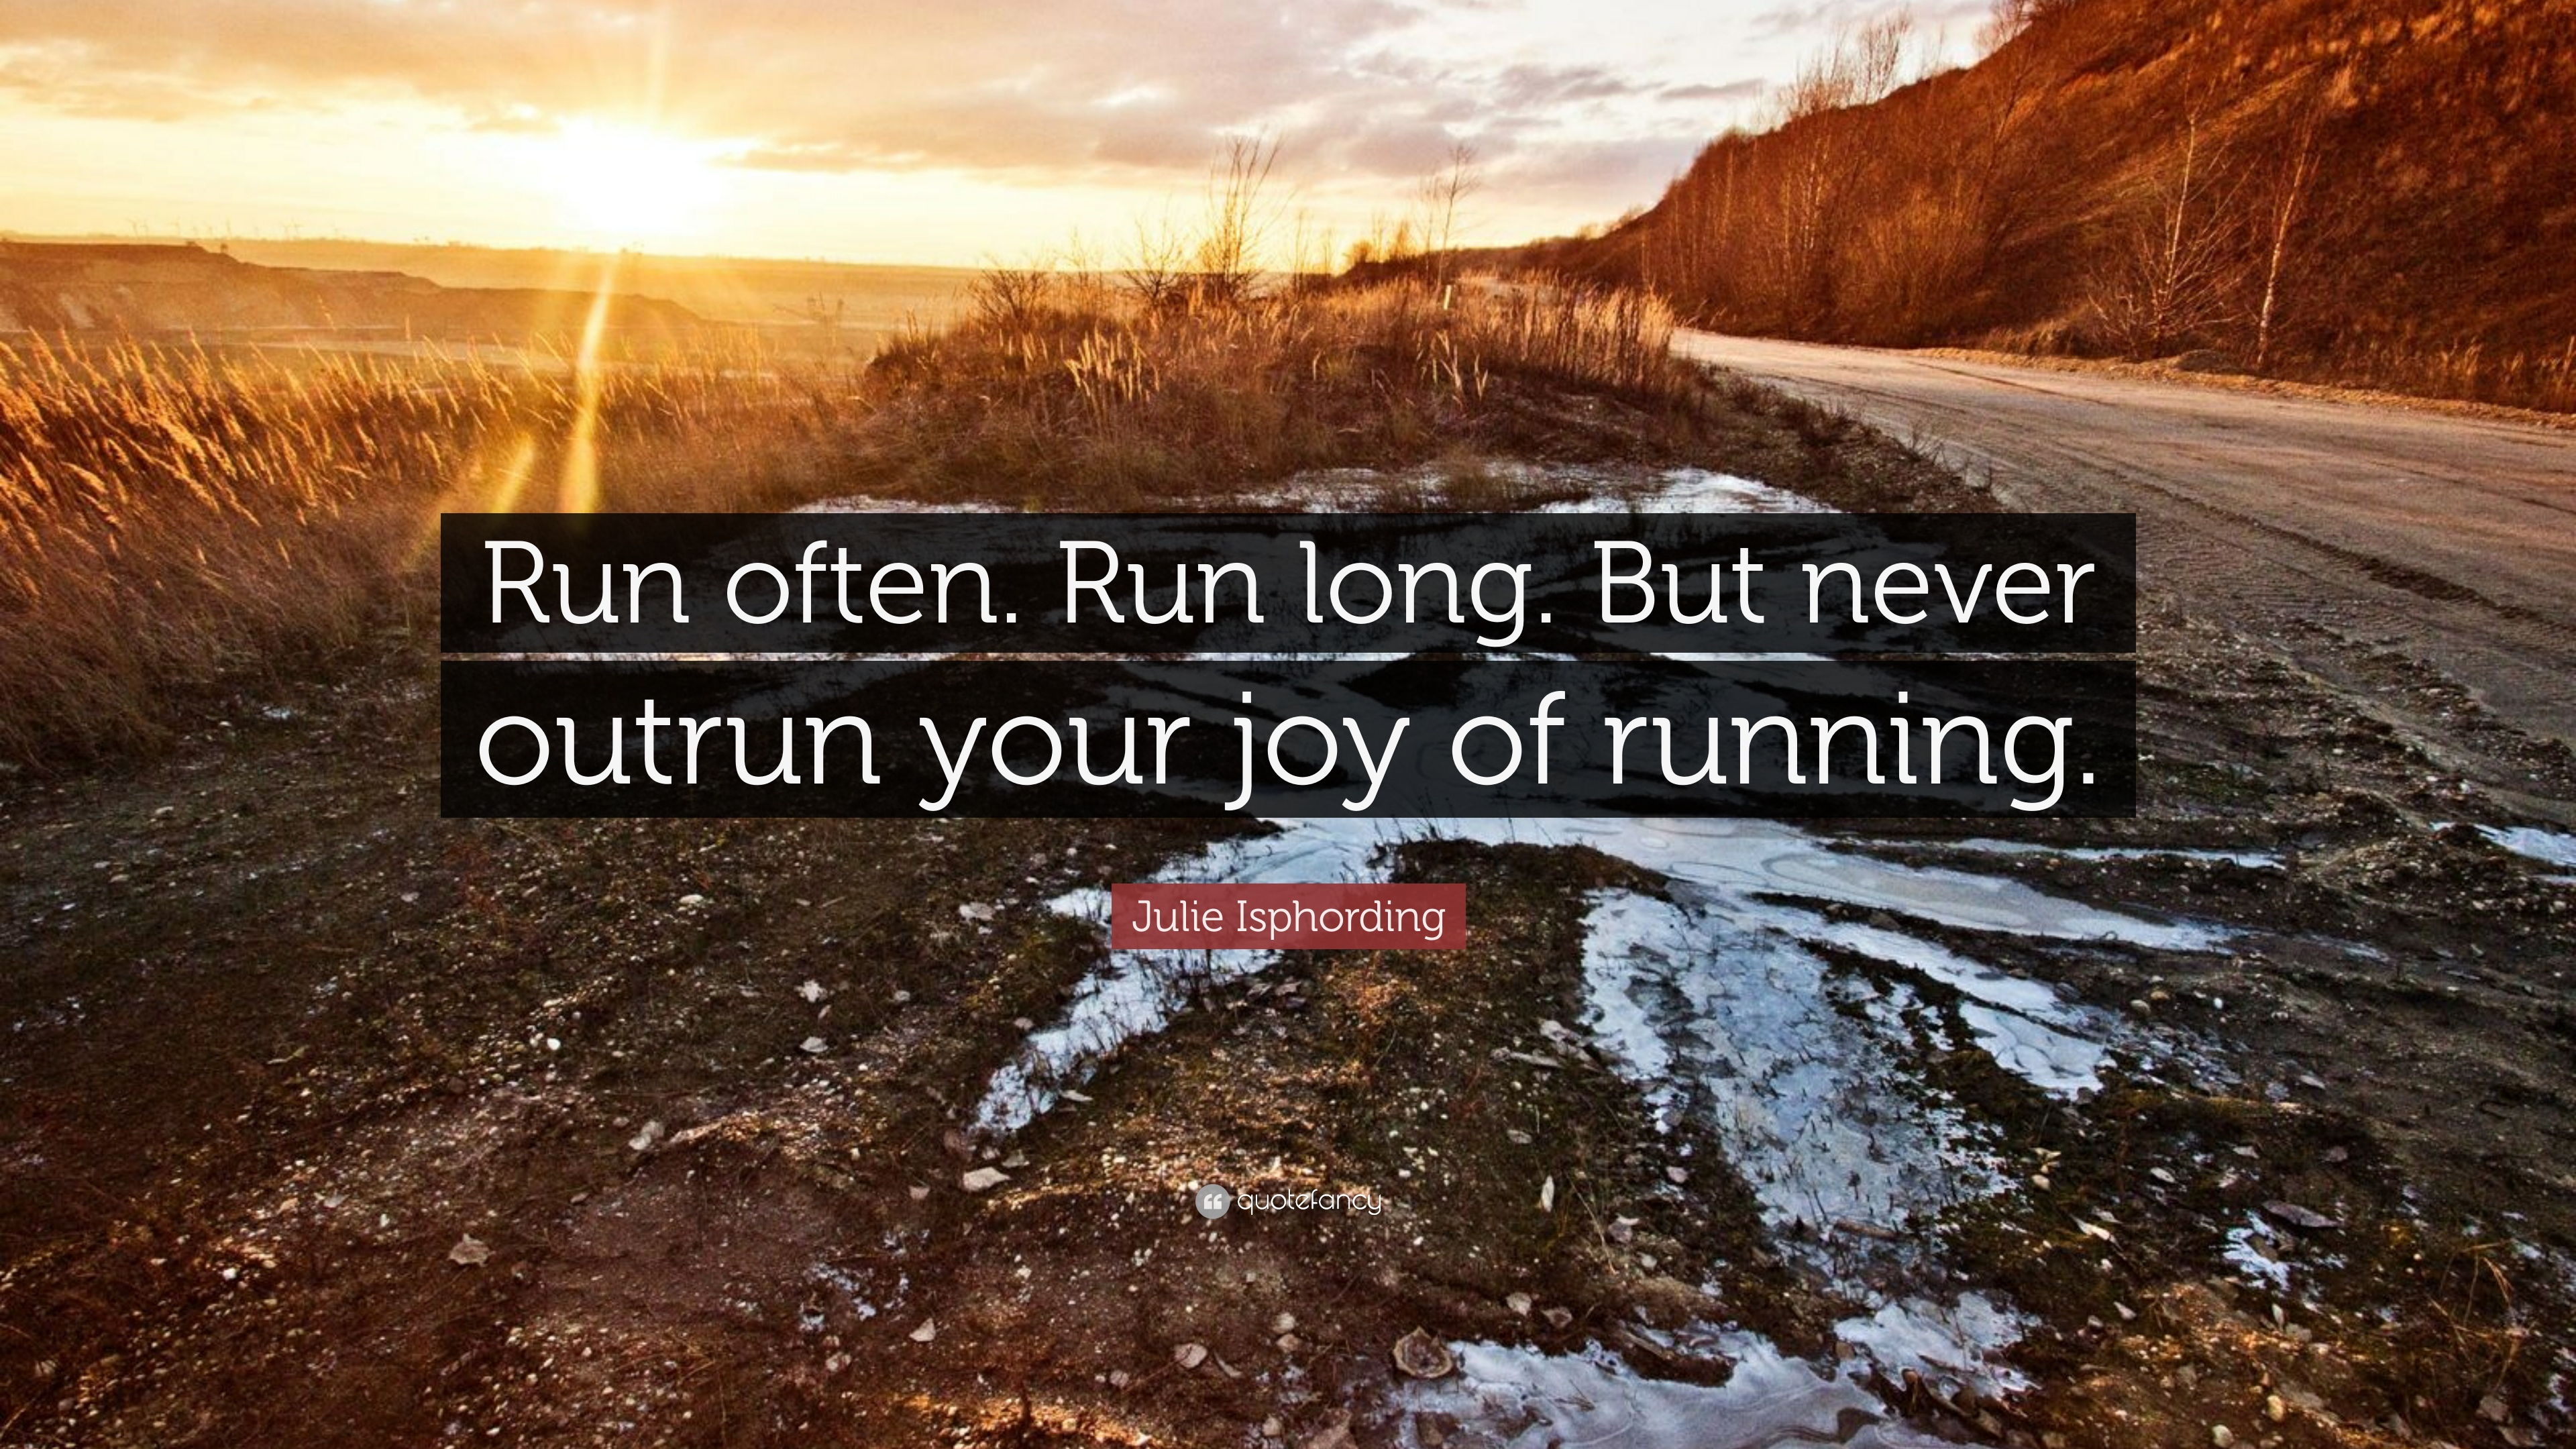 Image result for Run often. Run long. But never outrun your joy of running.